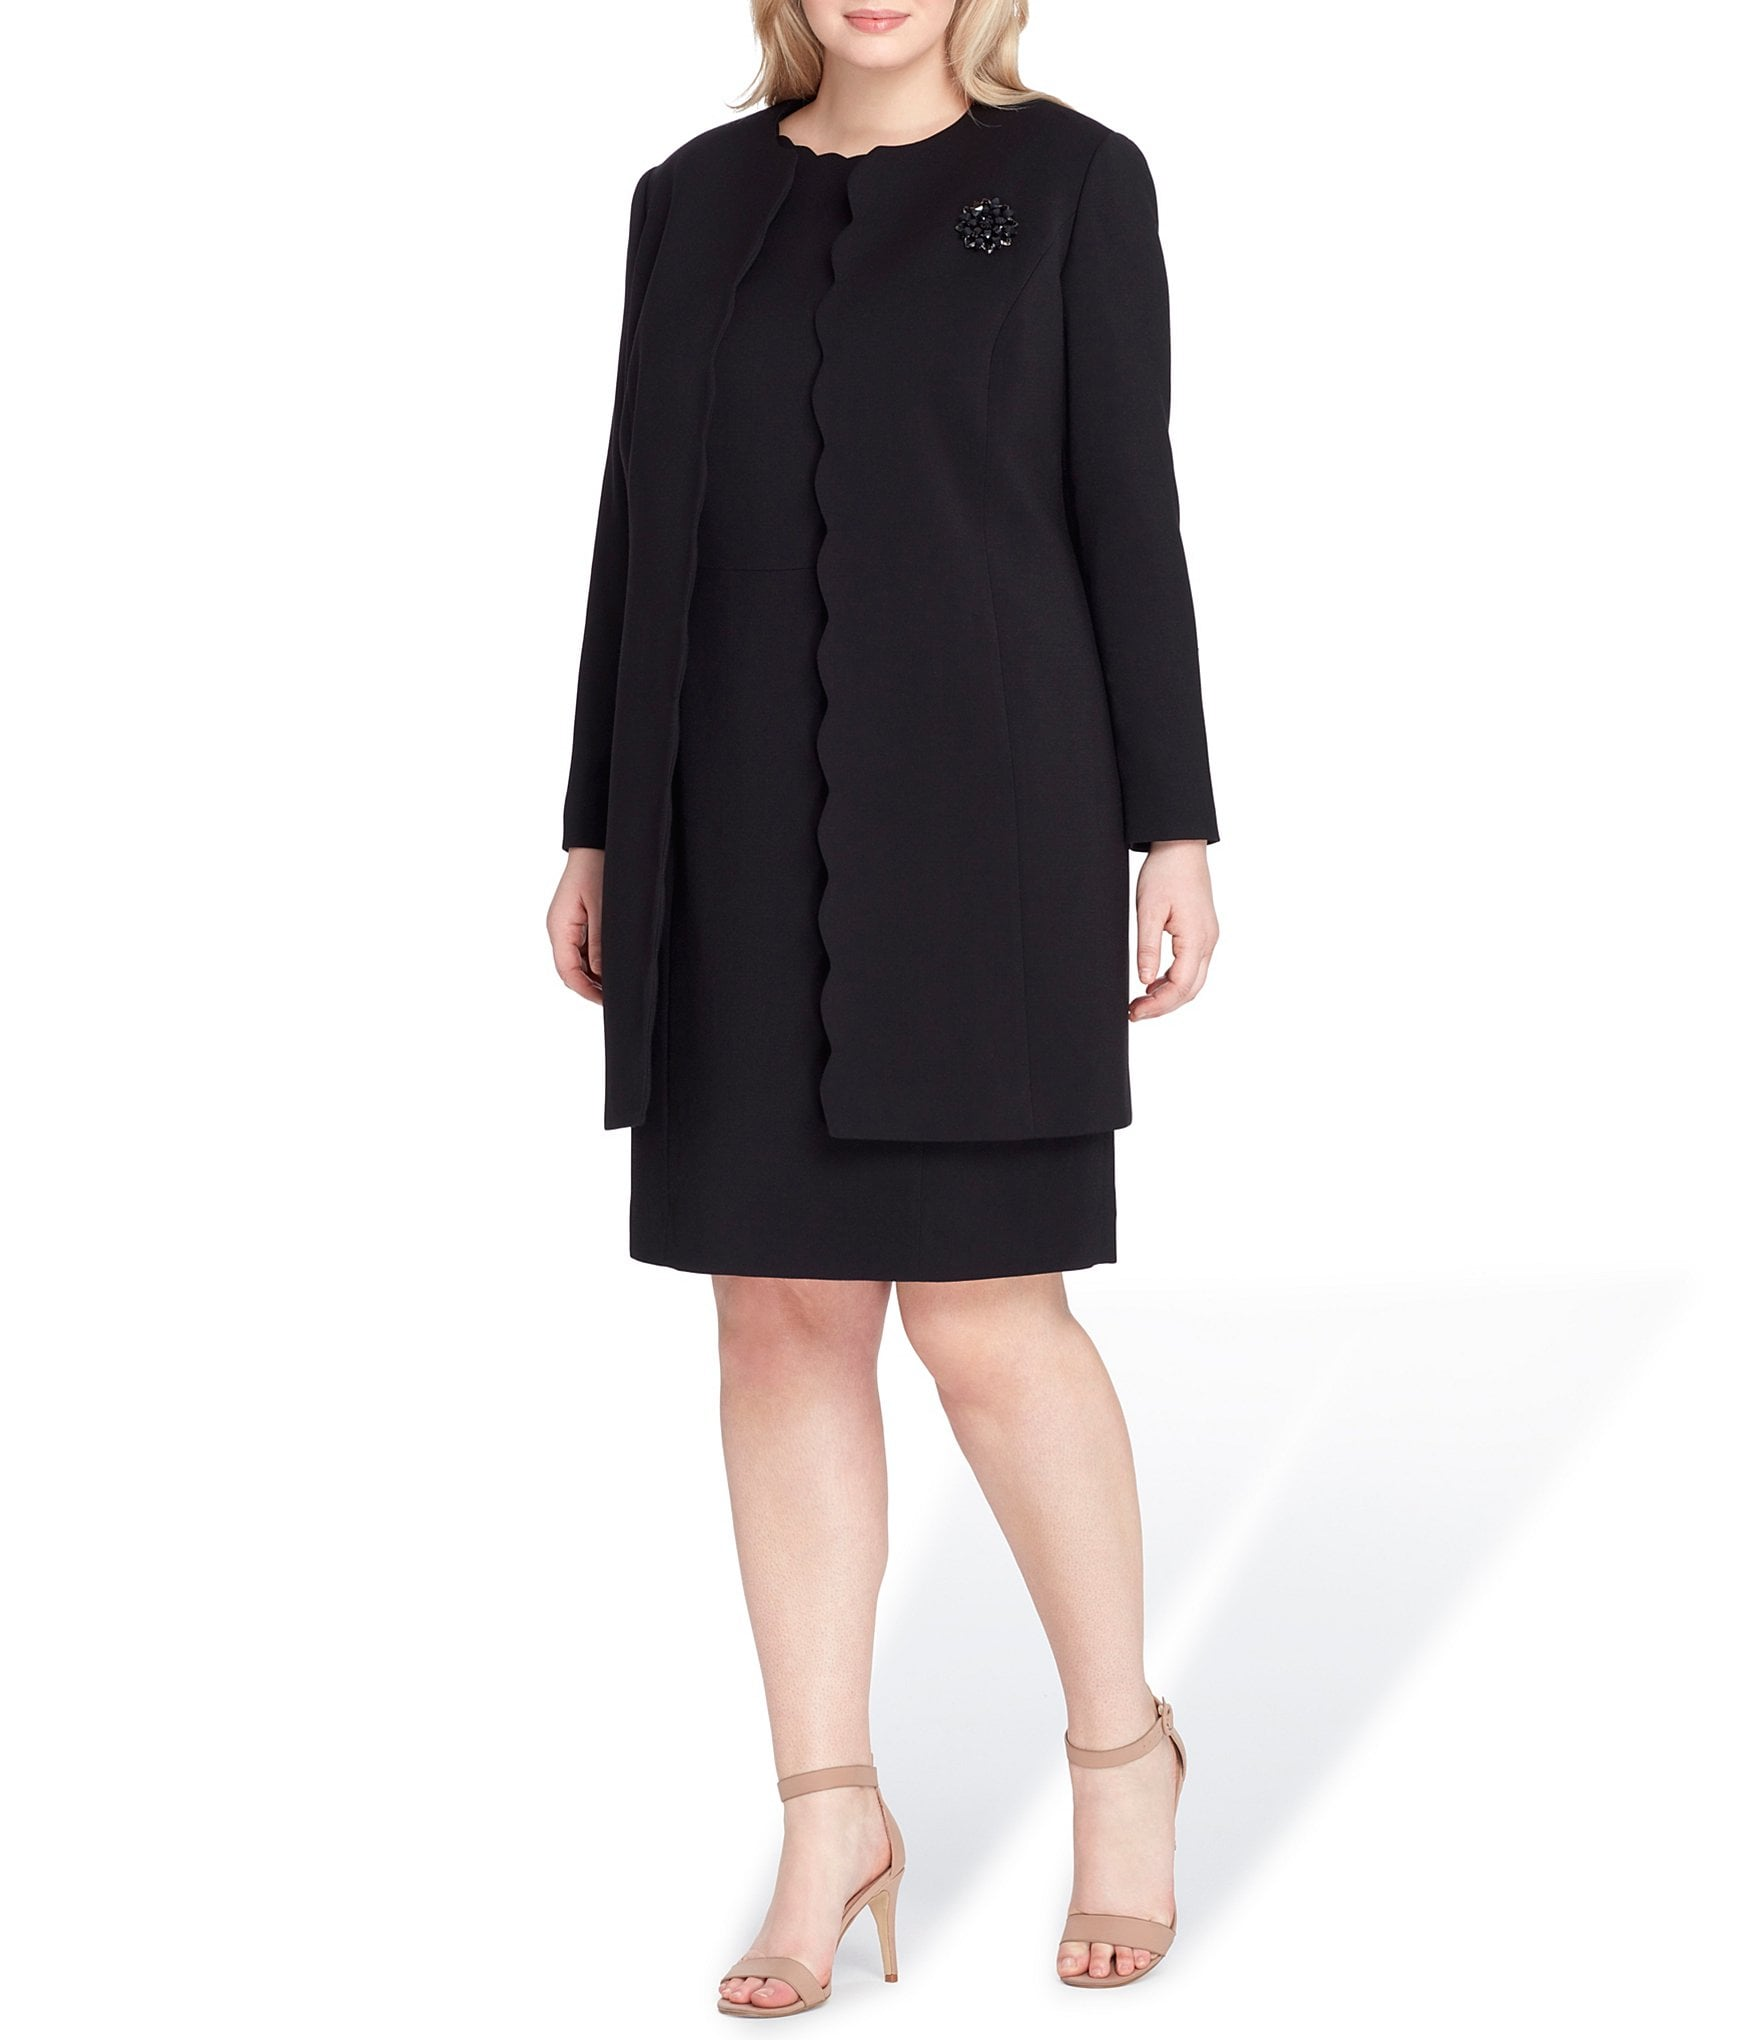 Coat to wear over cocktail dress